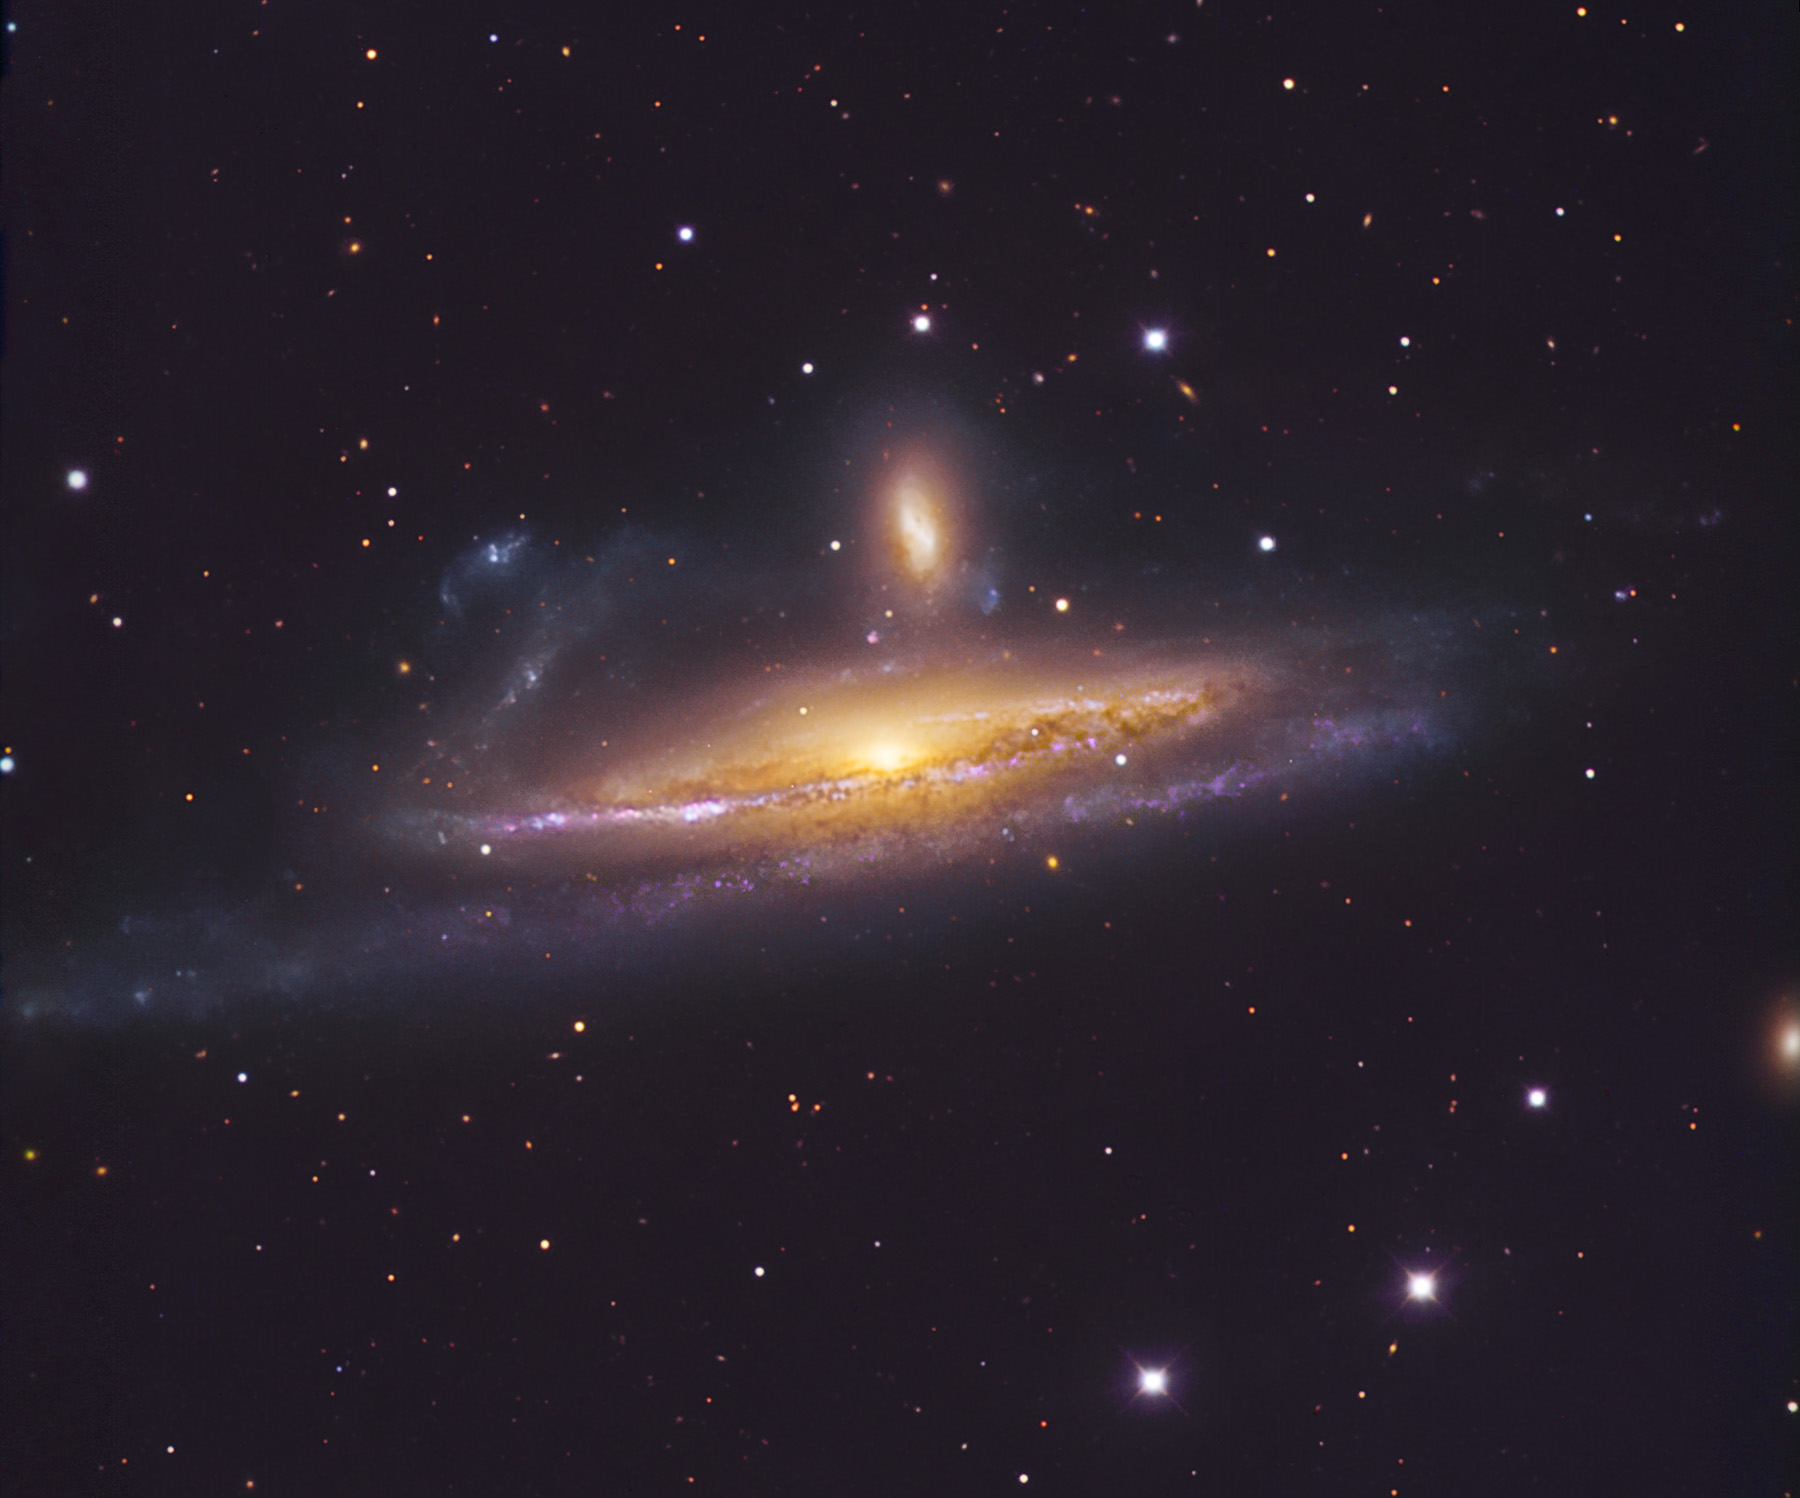 APOD: 2008 November 27 - Galaxies in the River